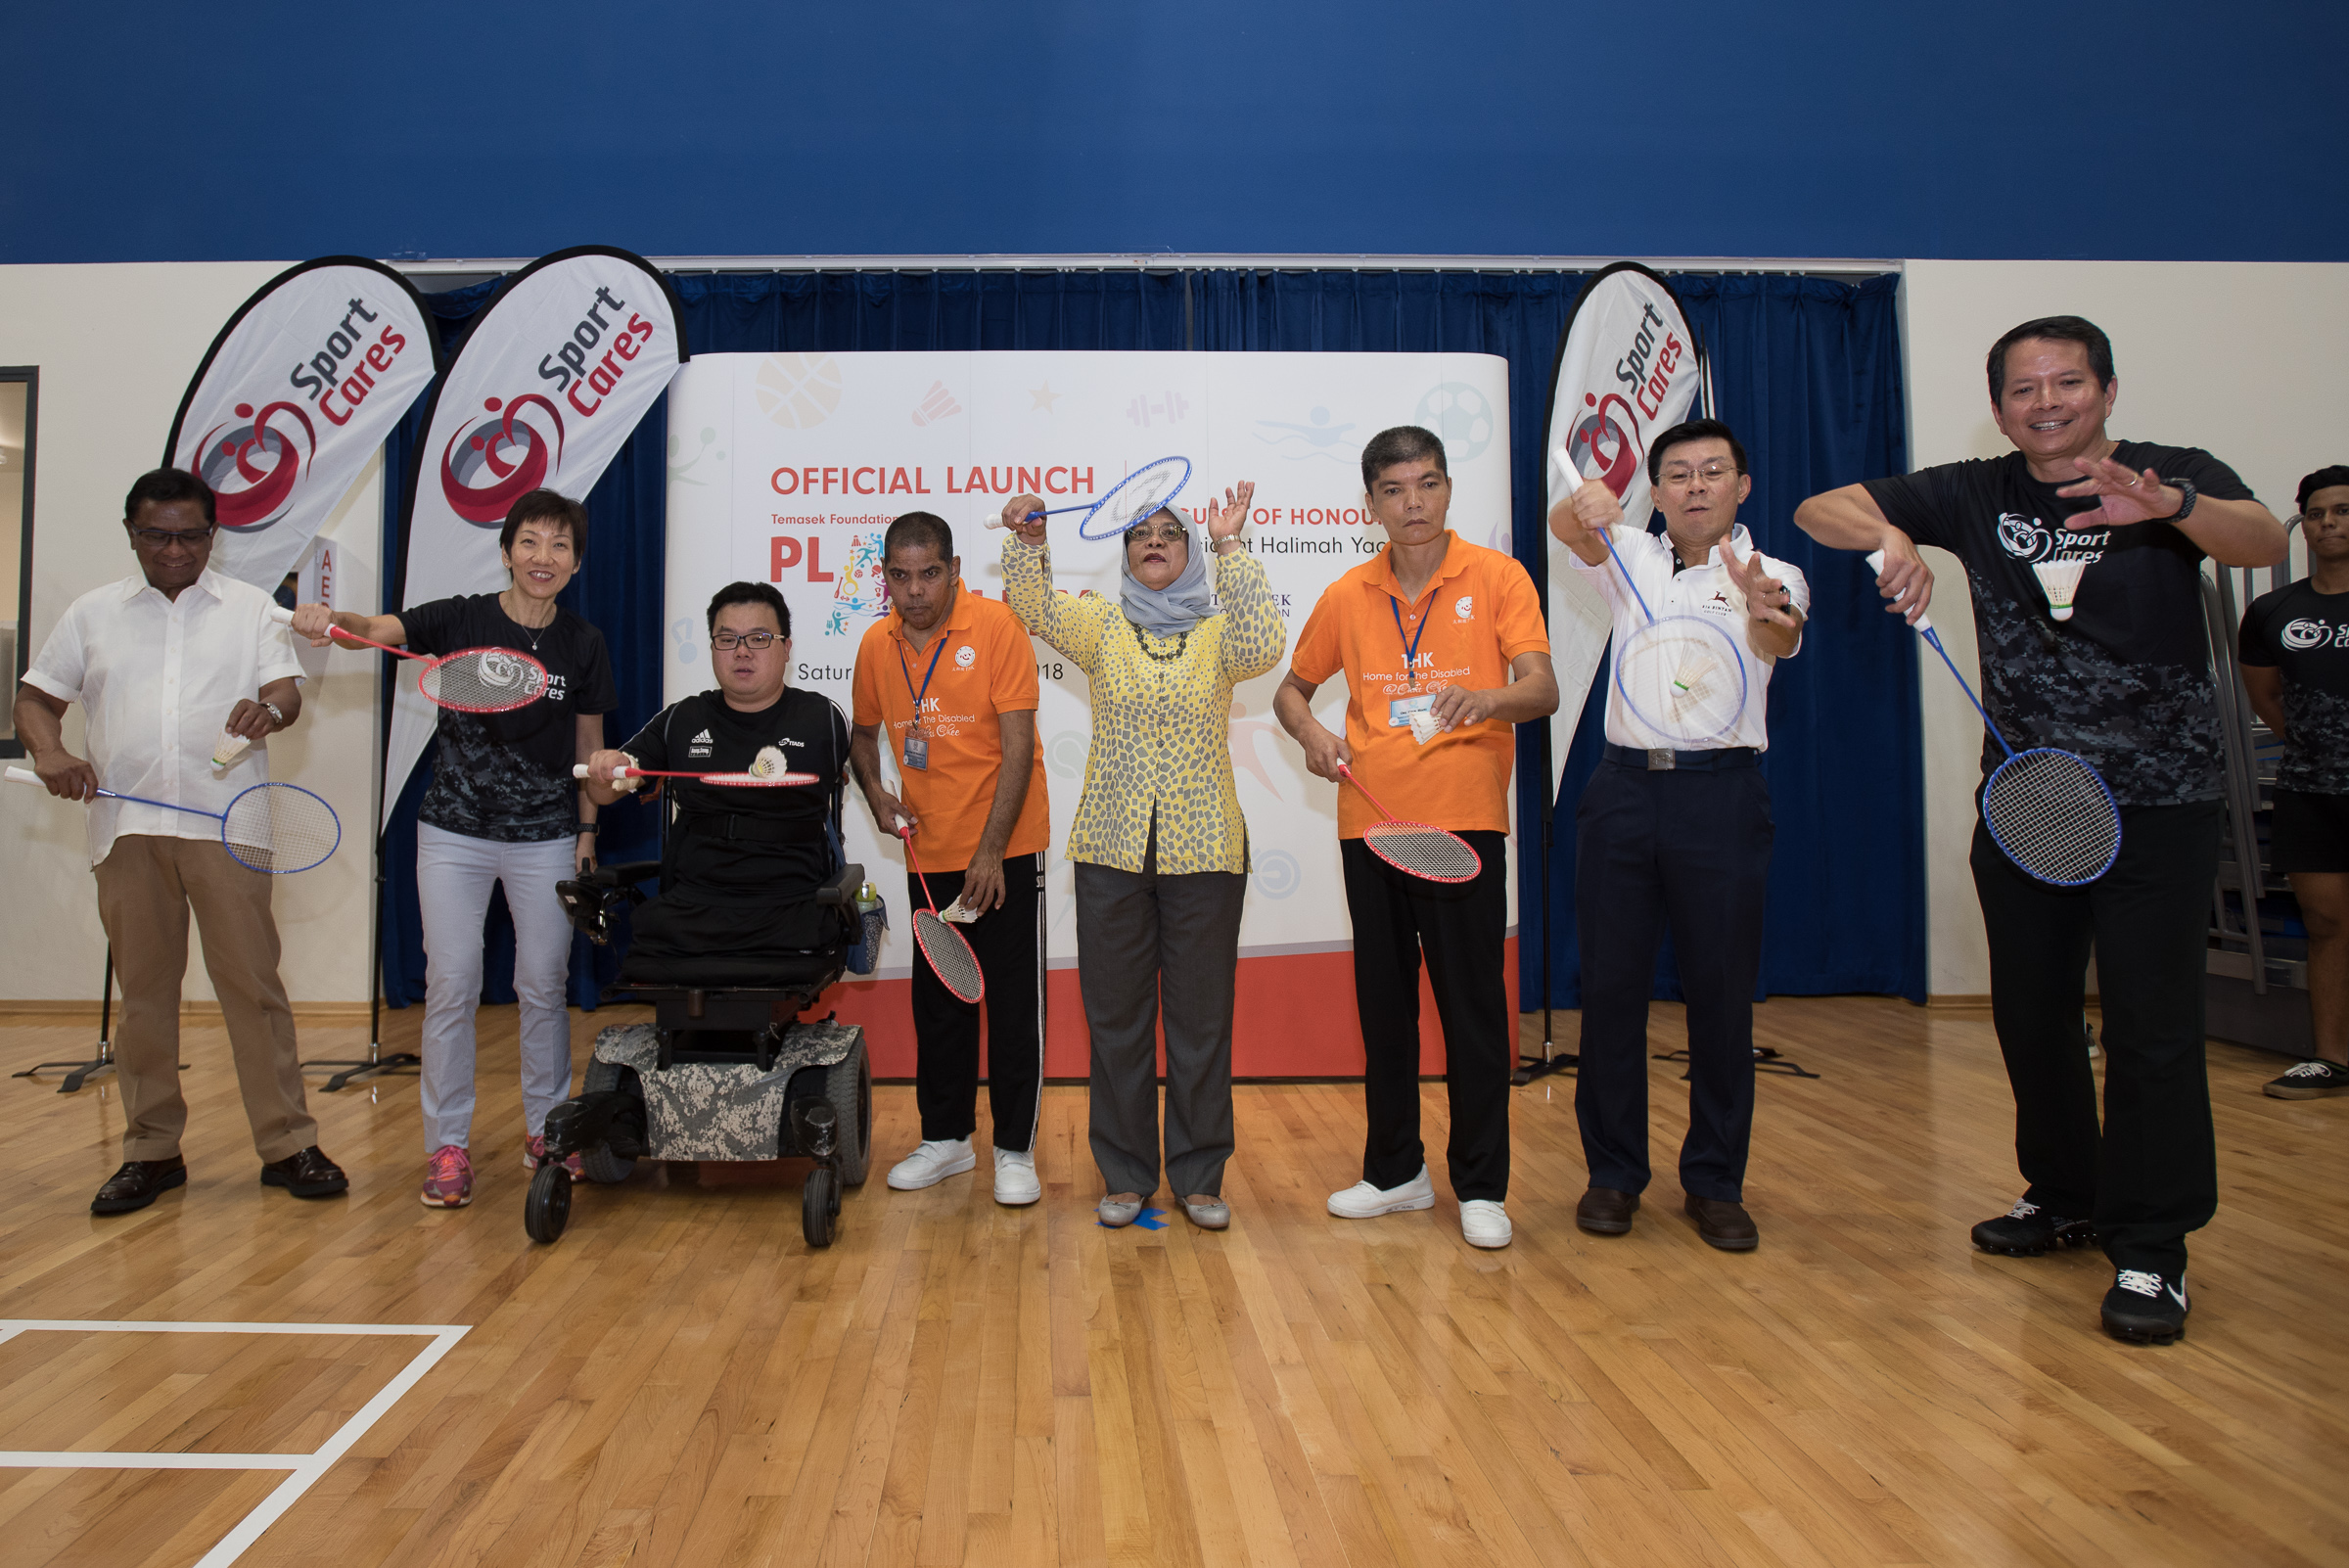 President Halimah Yacob with residents from Thye Hua Kwan Home for Disabled Adults, Minister Grace Fu and Advisor Lee Yi Shyan at the Temasek Foundation Cares - Play-Ability programme launch